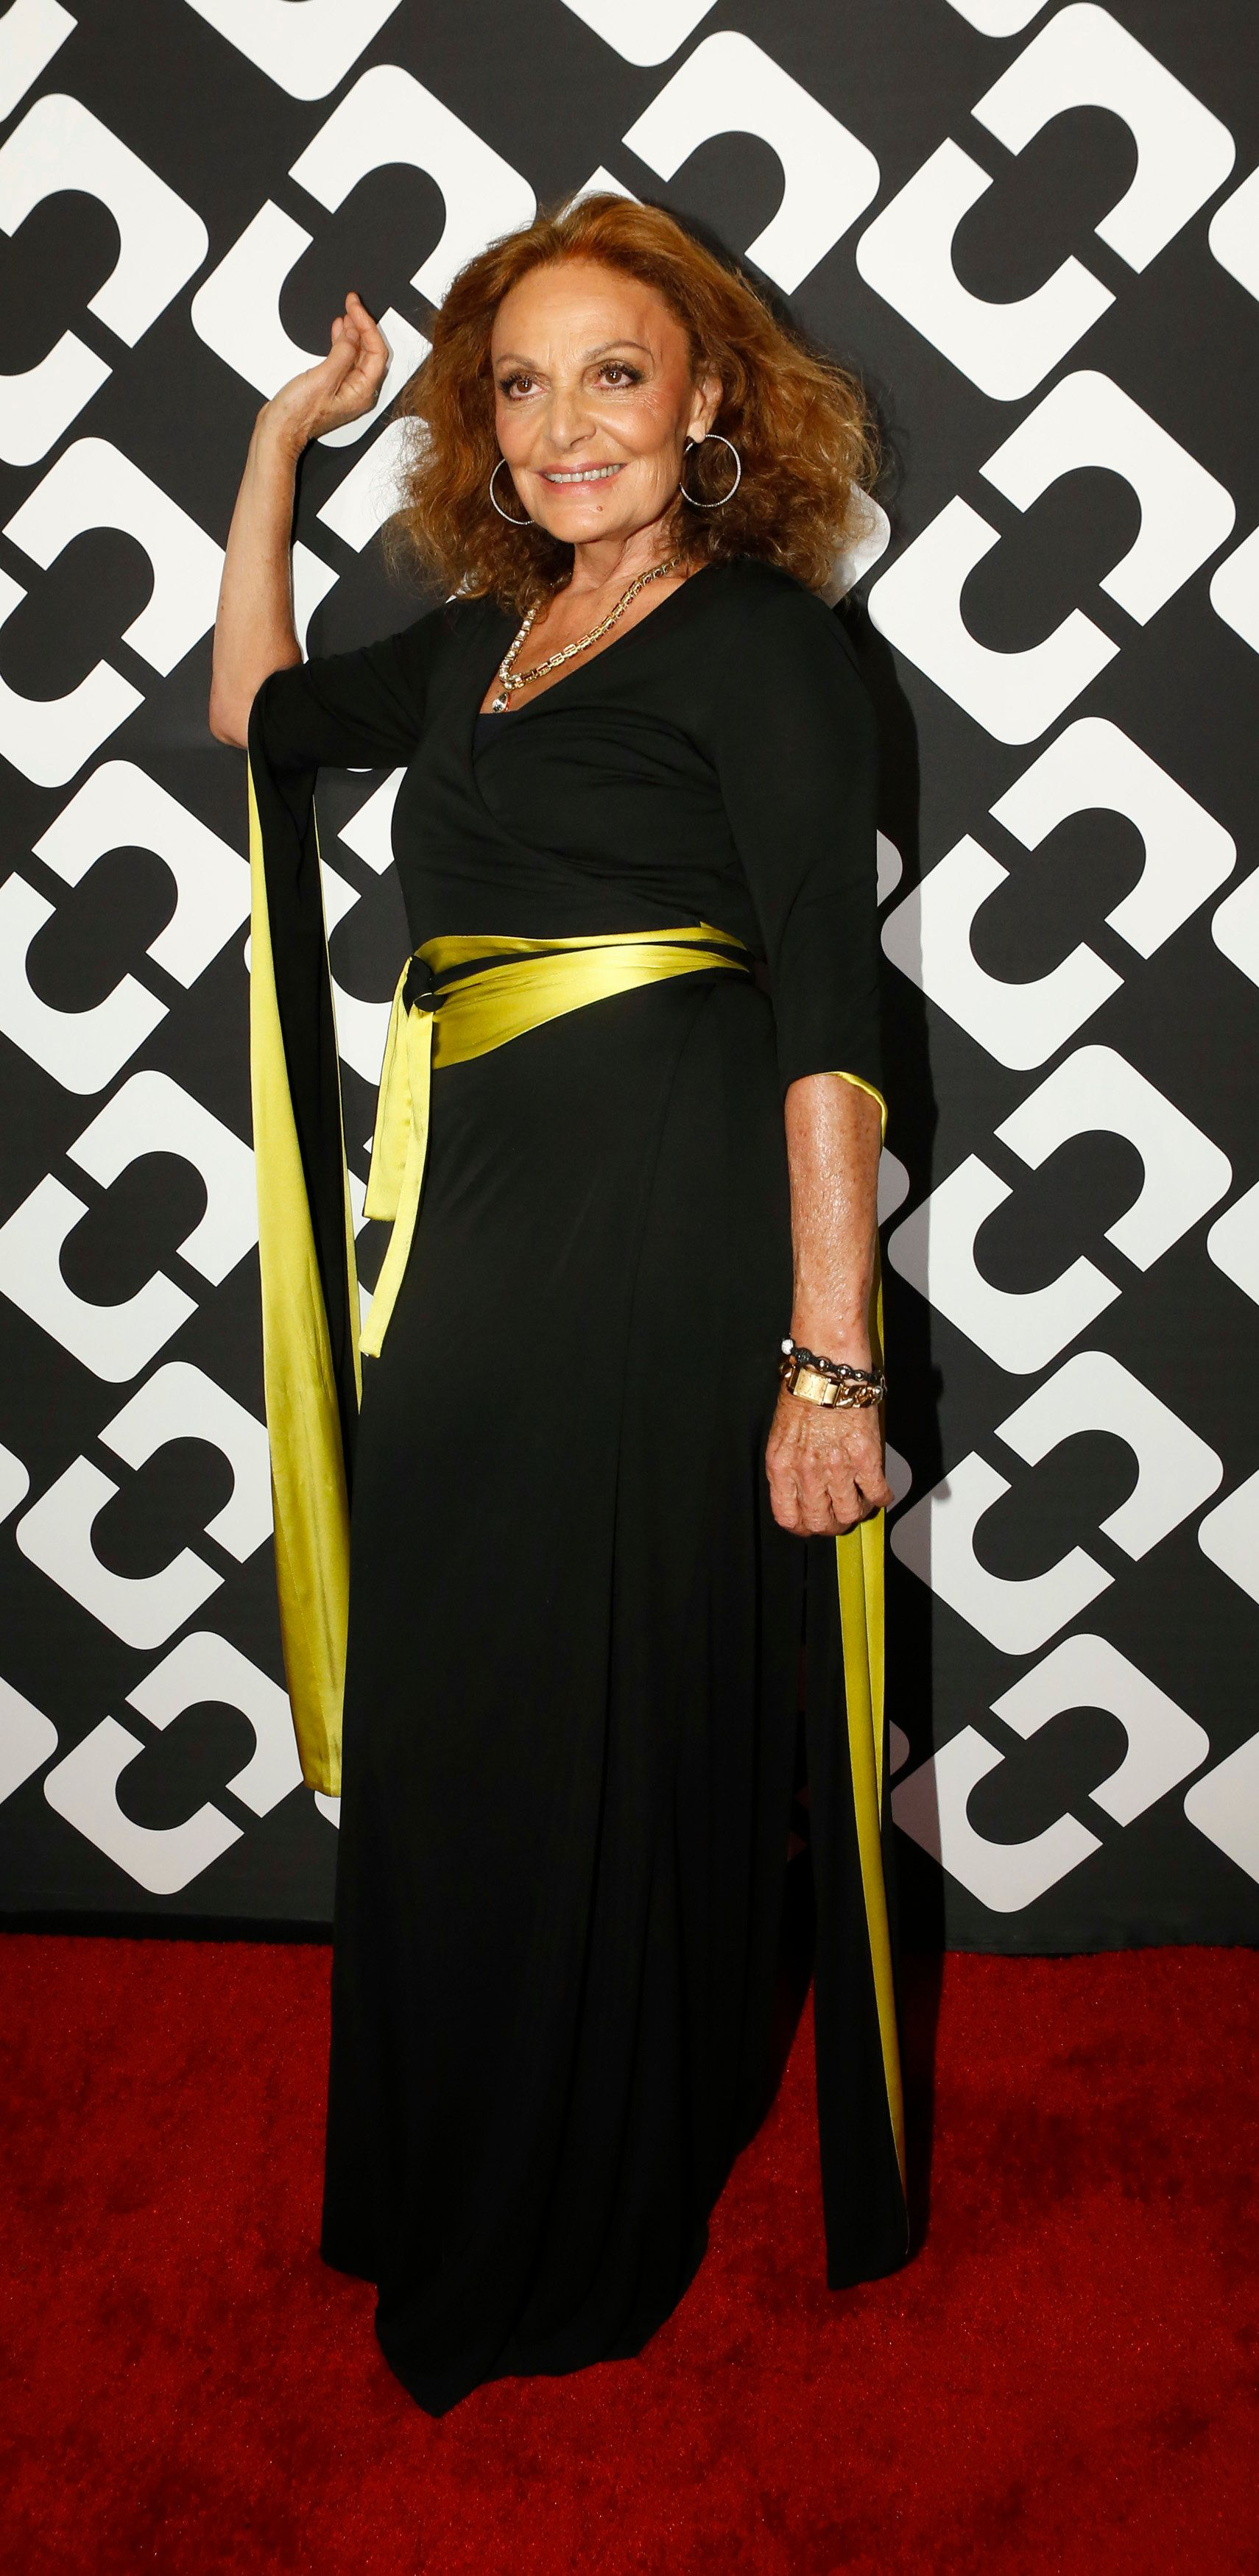 Fashion designer Diane Von Furstenberg poses at the opening of the Journey of a Dress exhibition in Los Angeles, California January 10, 2014.   REUTERS/Mario Anzuoni  (UNITED STATES - Tags: ENTERTAINMENT FASHION)